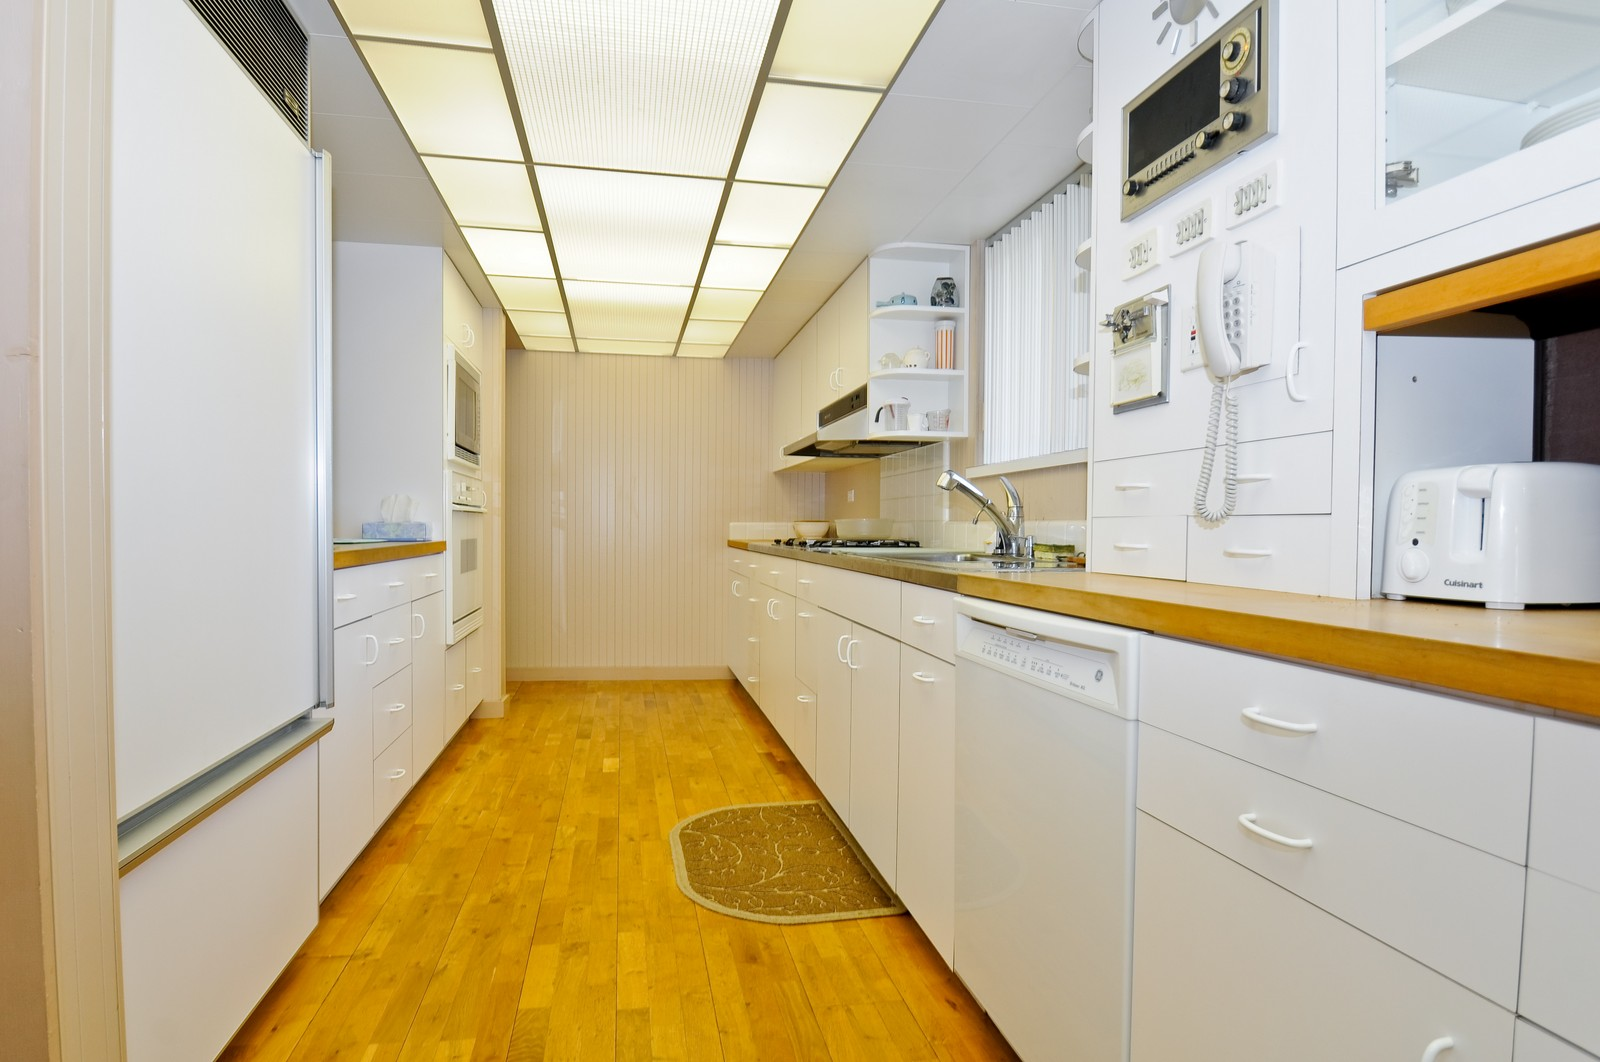 Real Estate Photography - 666 Birch Ln, Olympia Fields, IL, 60461 - 32 Ft. Galley Kitchen Loaded w/Storage Space